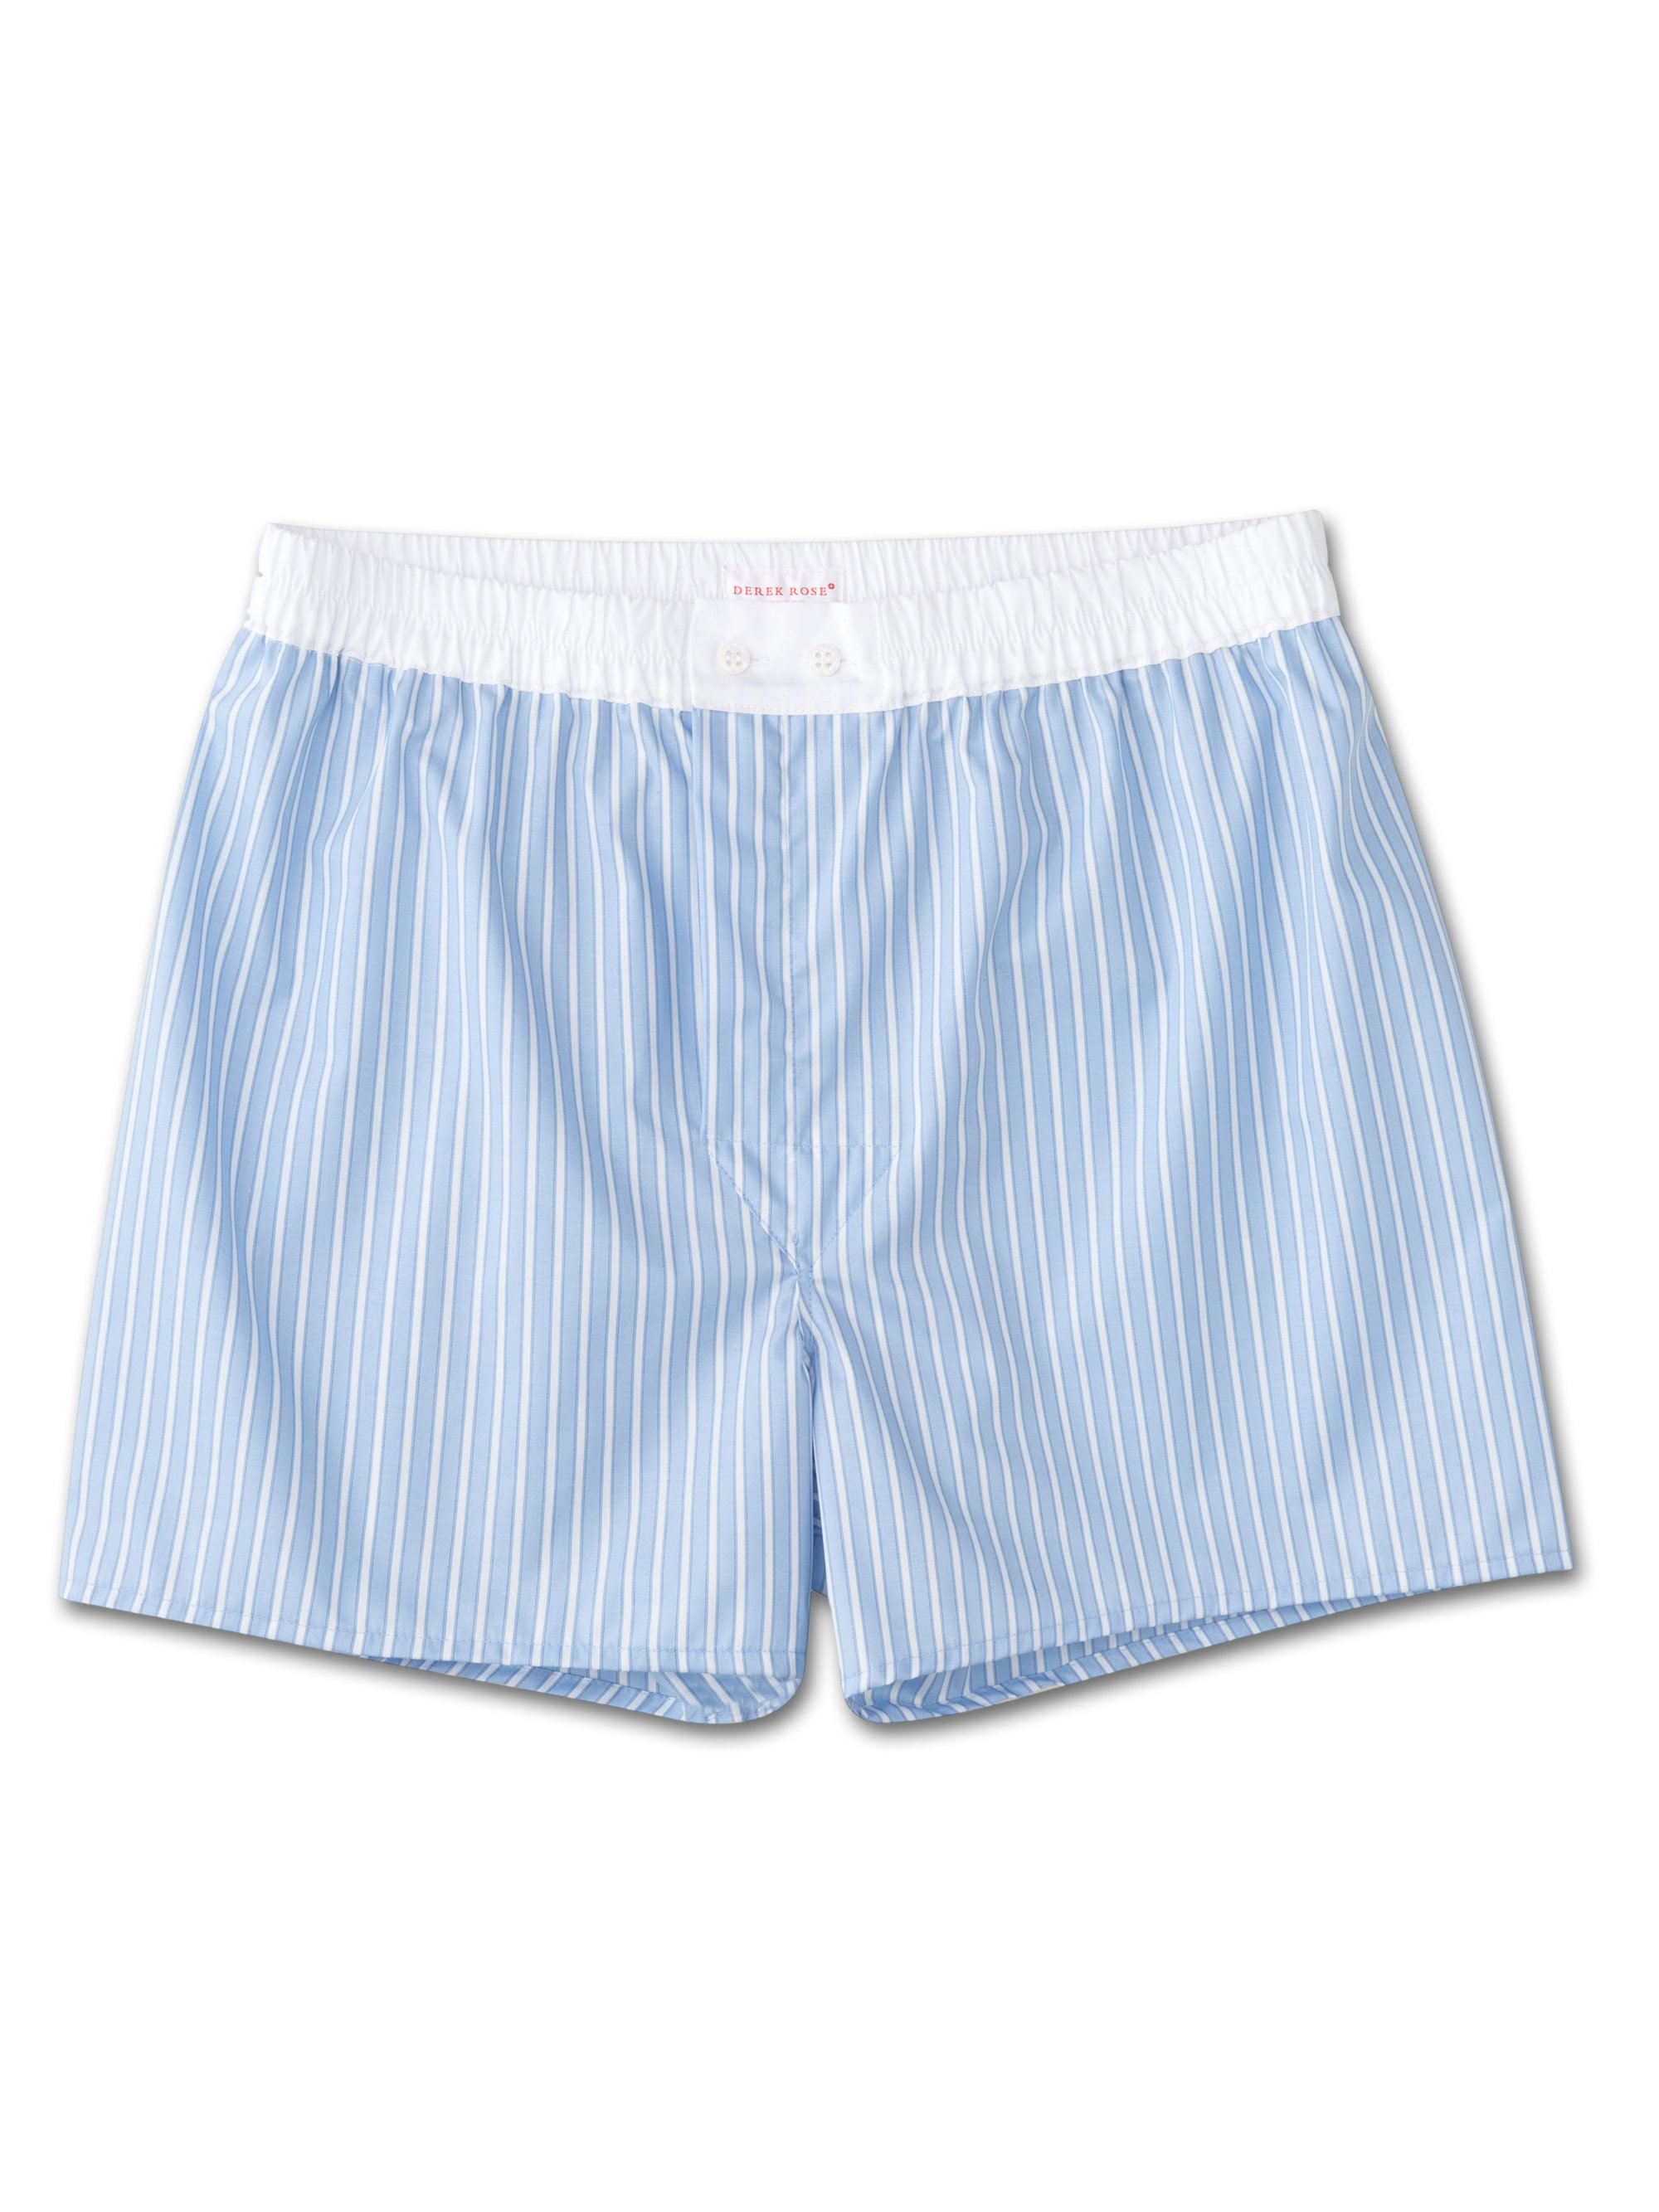 Men's Classic Fit Boxer Shorts Jermyn Pure Cotton Stripe Blue White